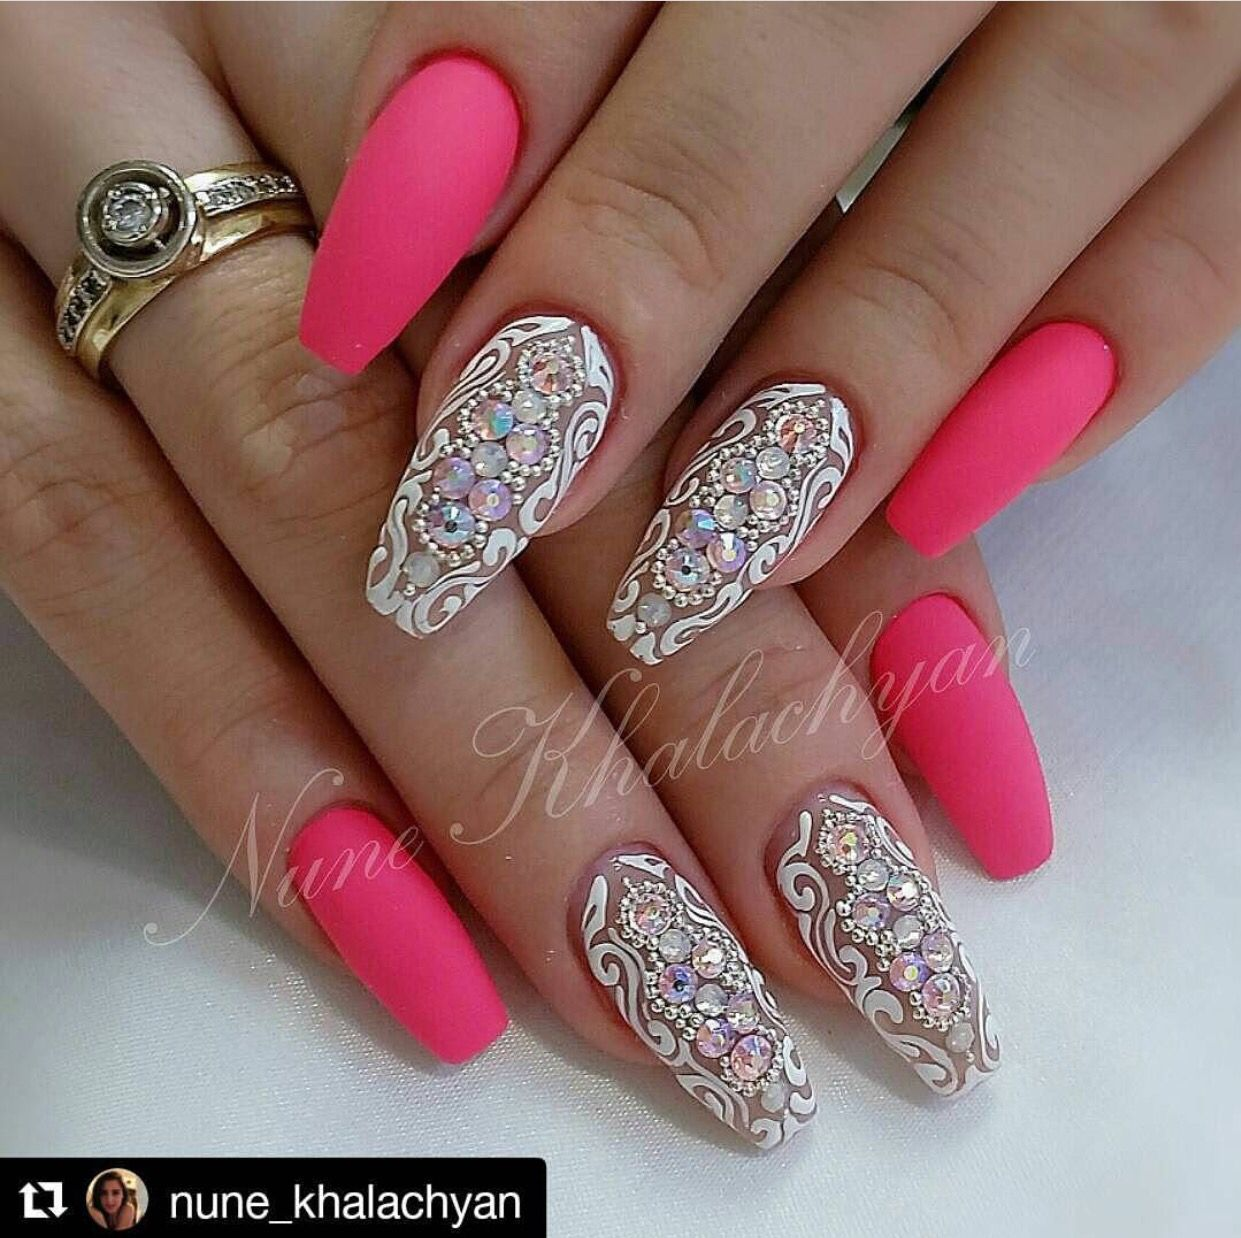 Pin by alexis. on Claws. | Pinterest | Dope nails, Toe nail designs ...